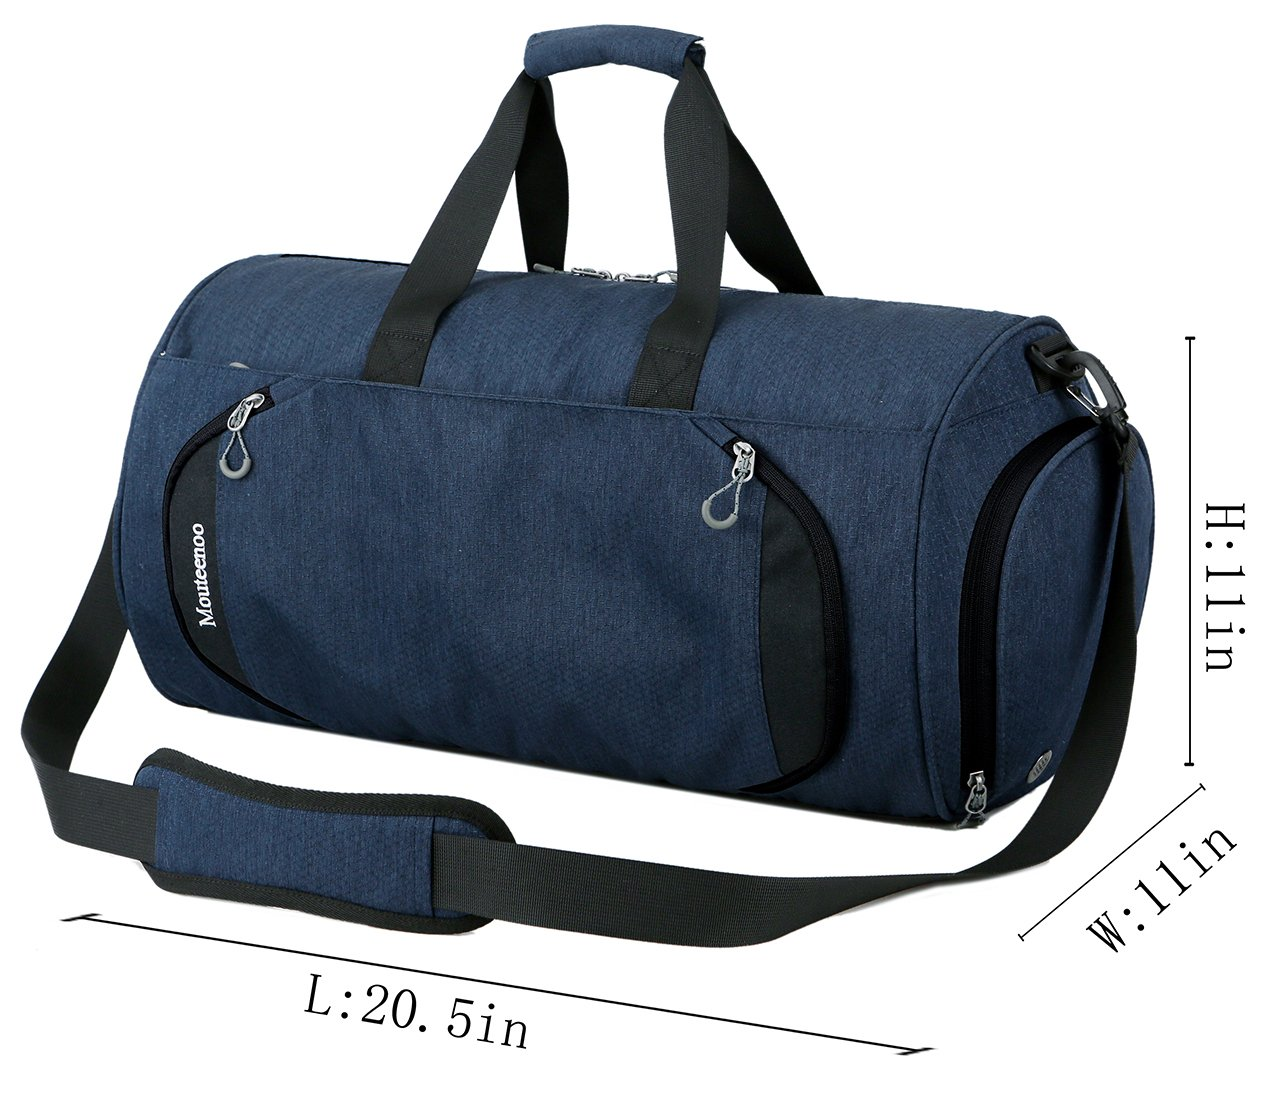 Gym Sports Small Duffel Bag for Men and Women with Shoes Compartment - Mouteenoo (Small, Blue/Black) by Mouteenoo (Image #3)